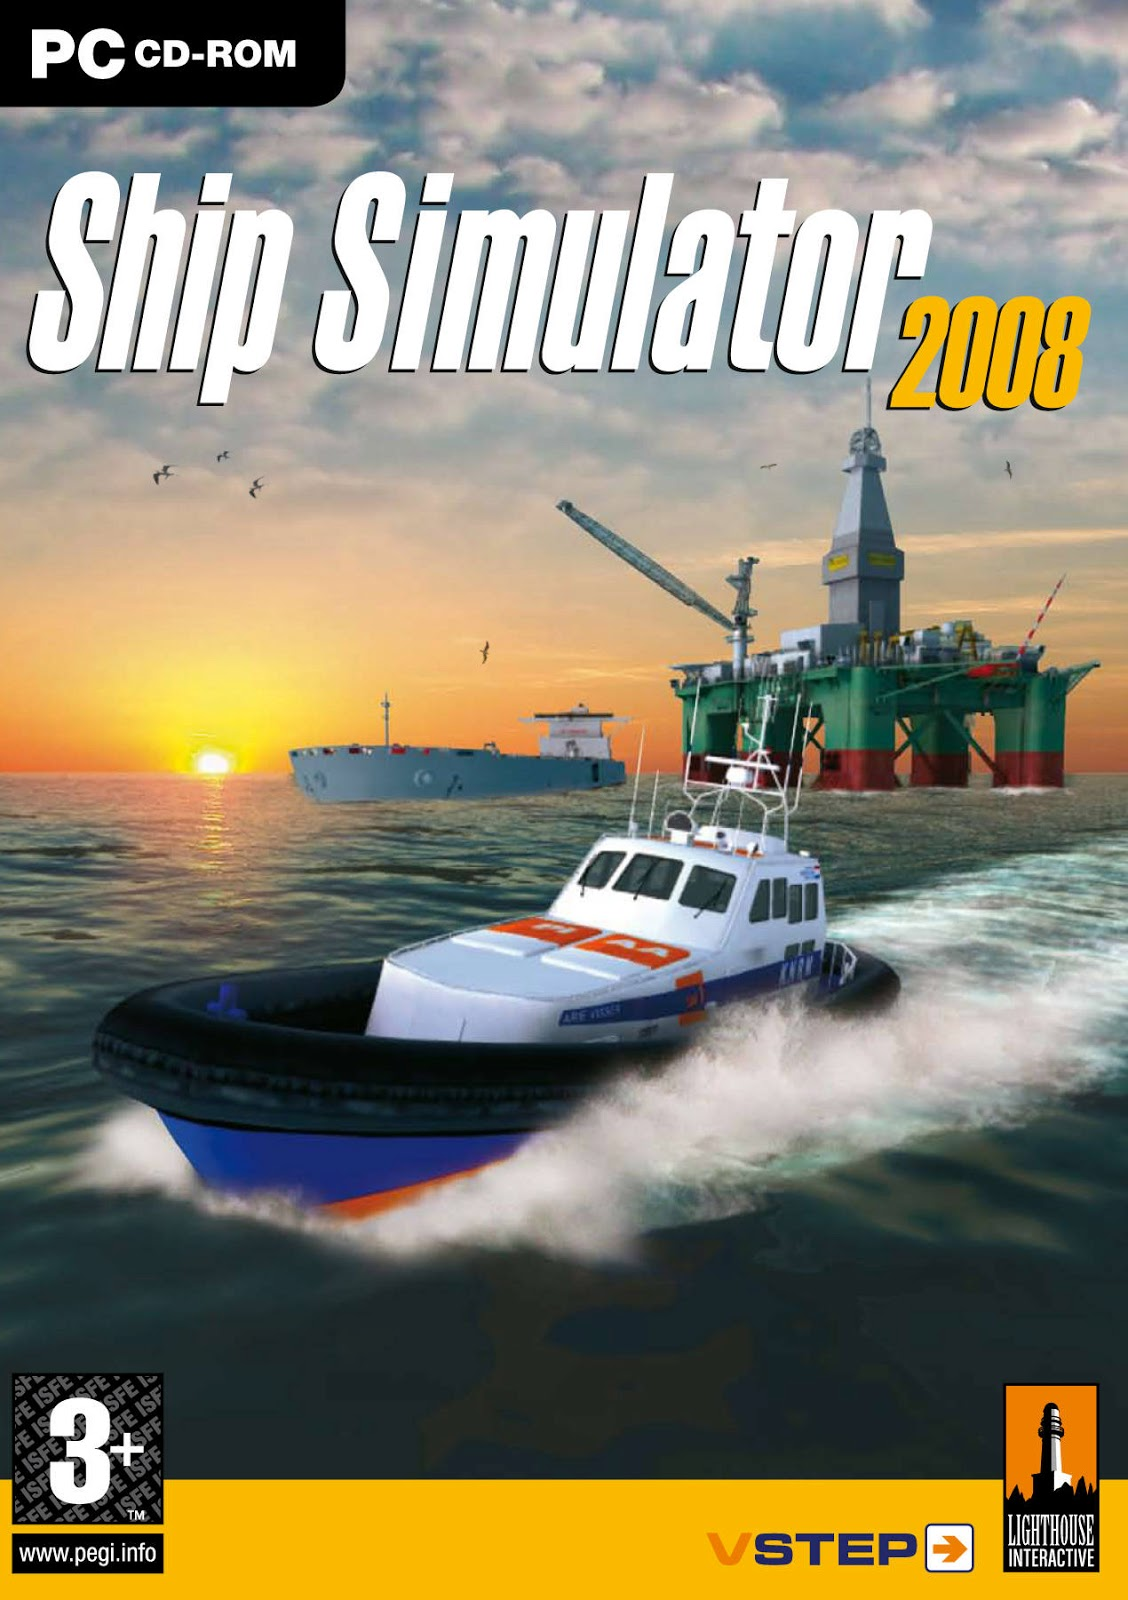 Environmental Ship Index Program